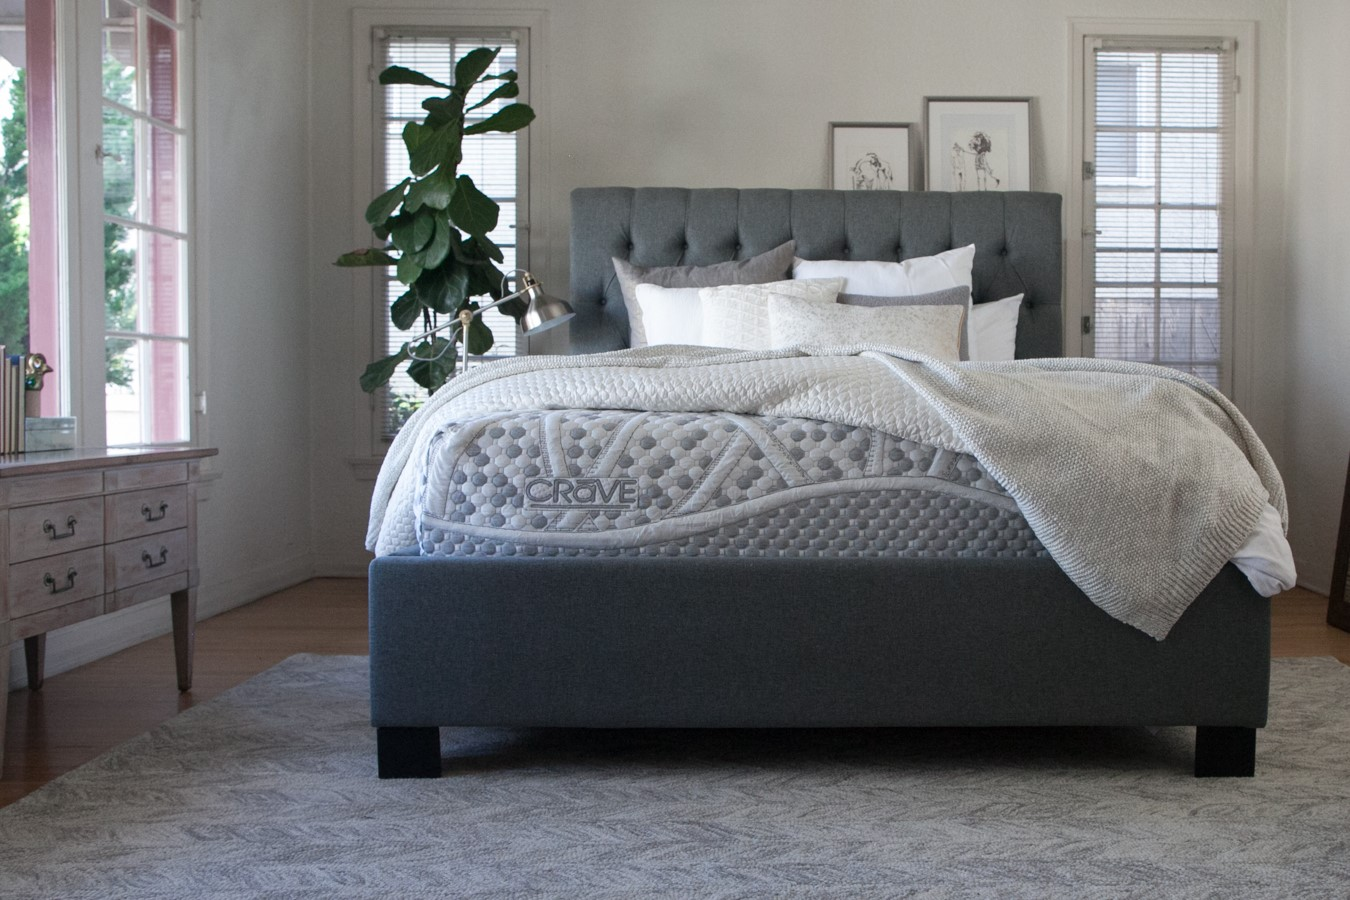 Buying a mattress: Crave mattresses, Made in USA